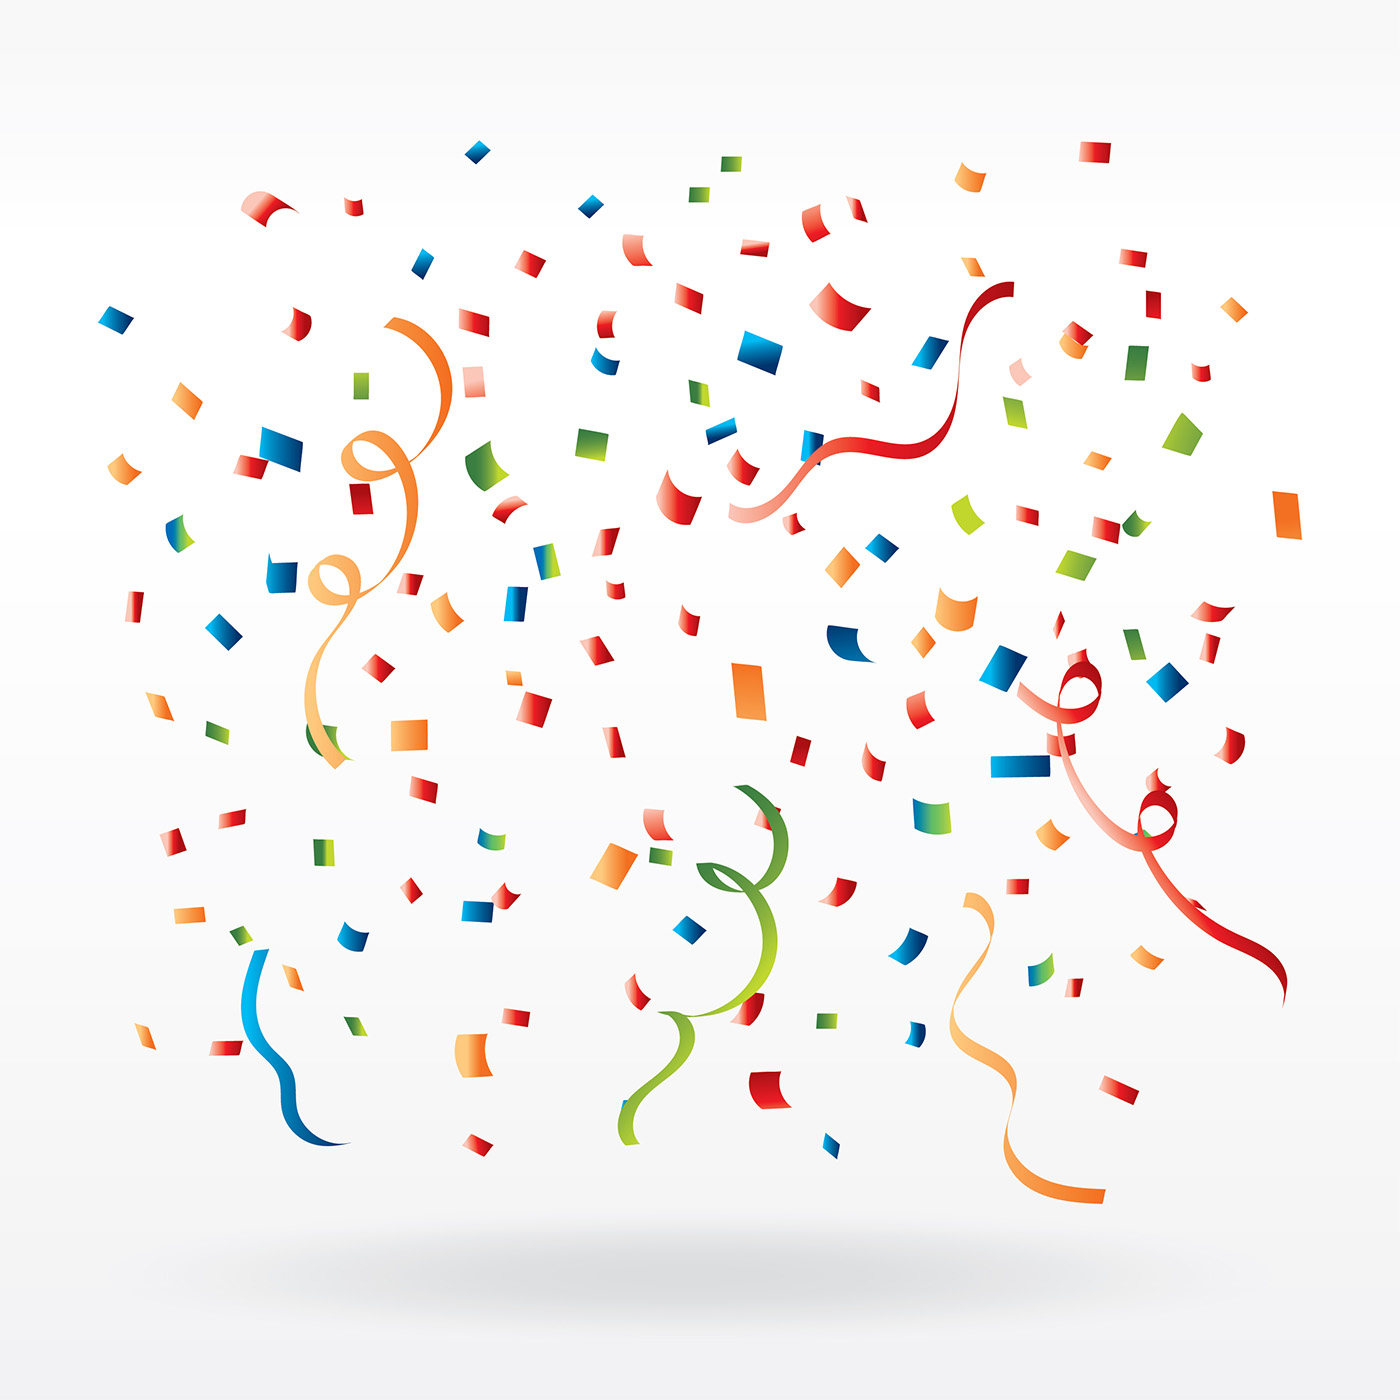 confetti free vector art 20966 free downloads